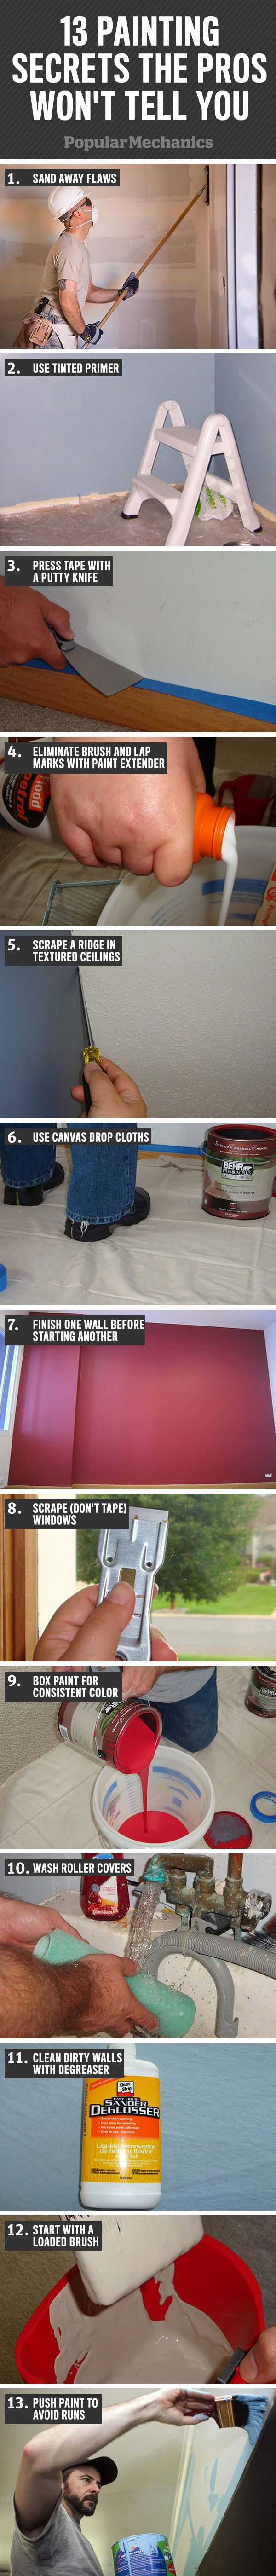 14 Painting Secrets the Pros Won t Tell You